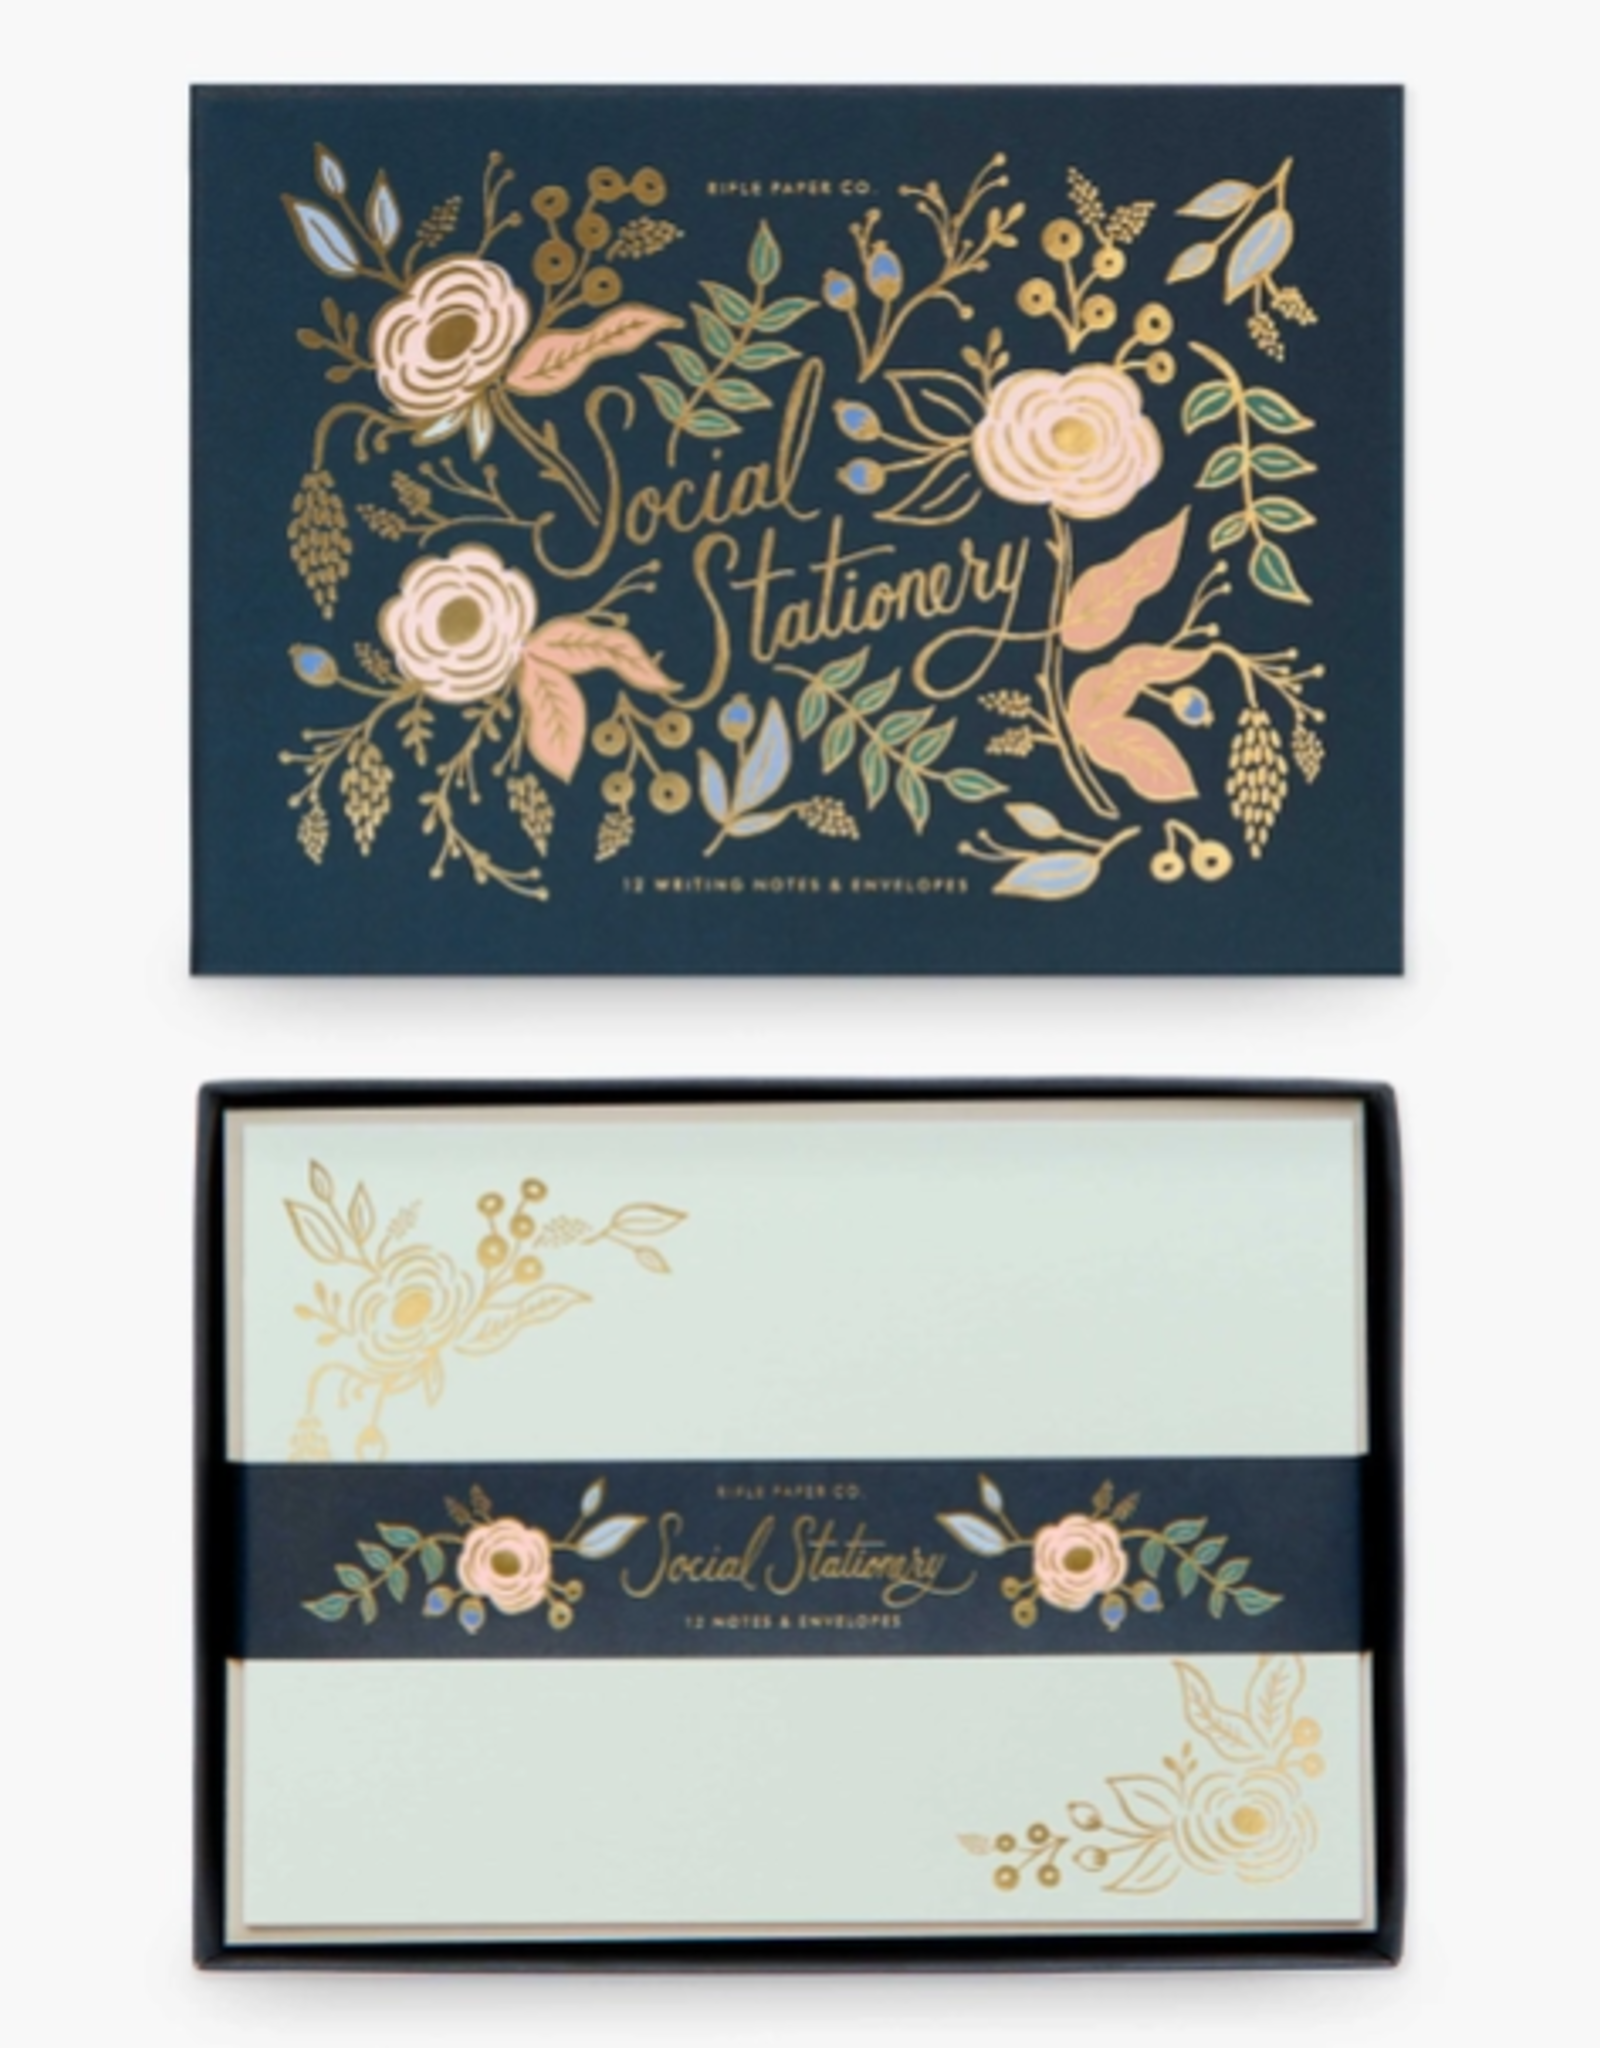 Rifle Paper Co. Rifle Paper Social Stationery Sets